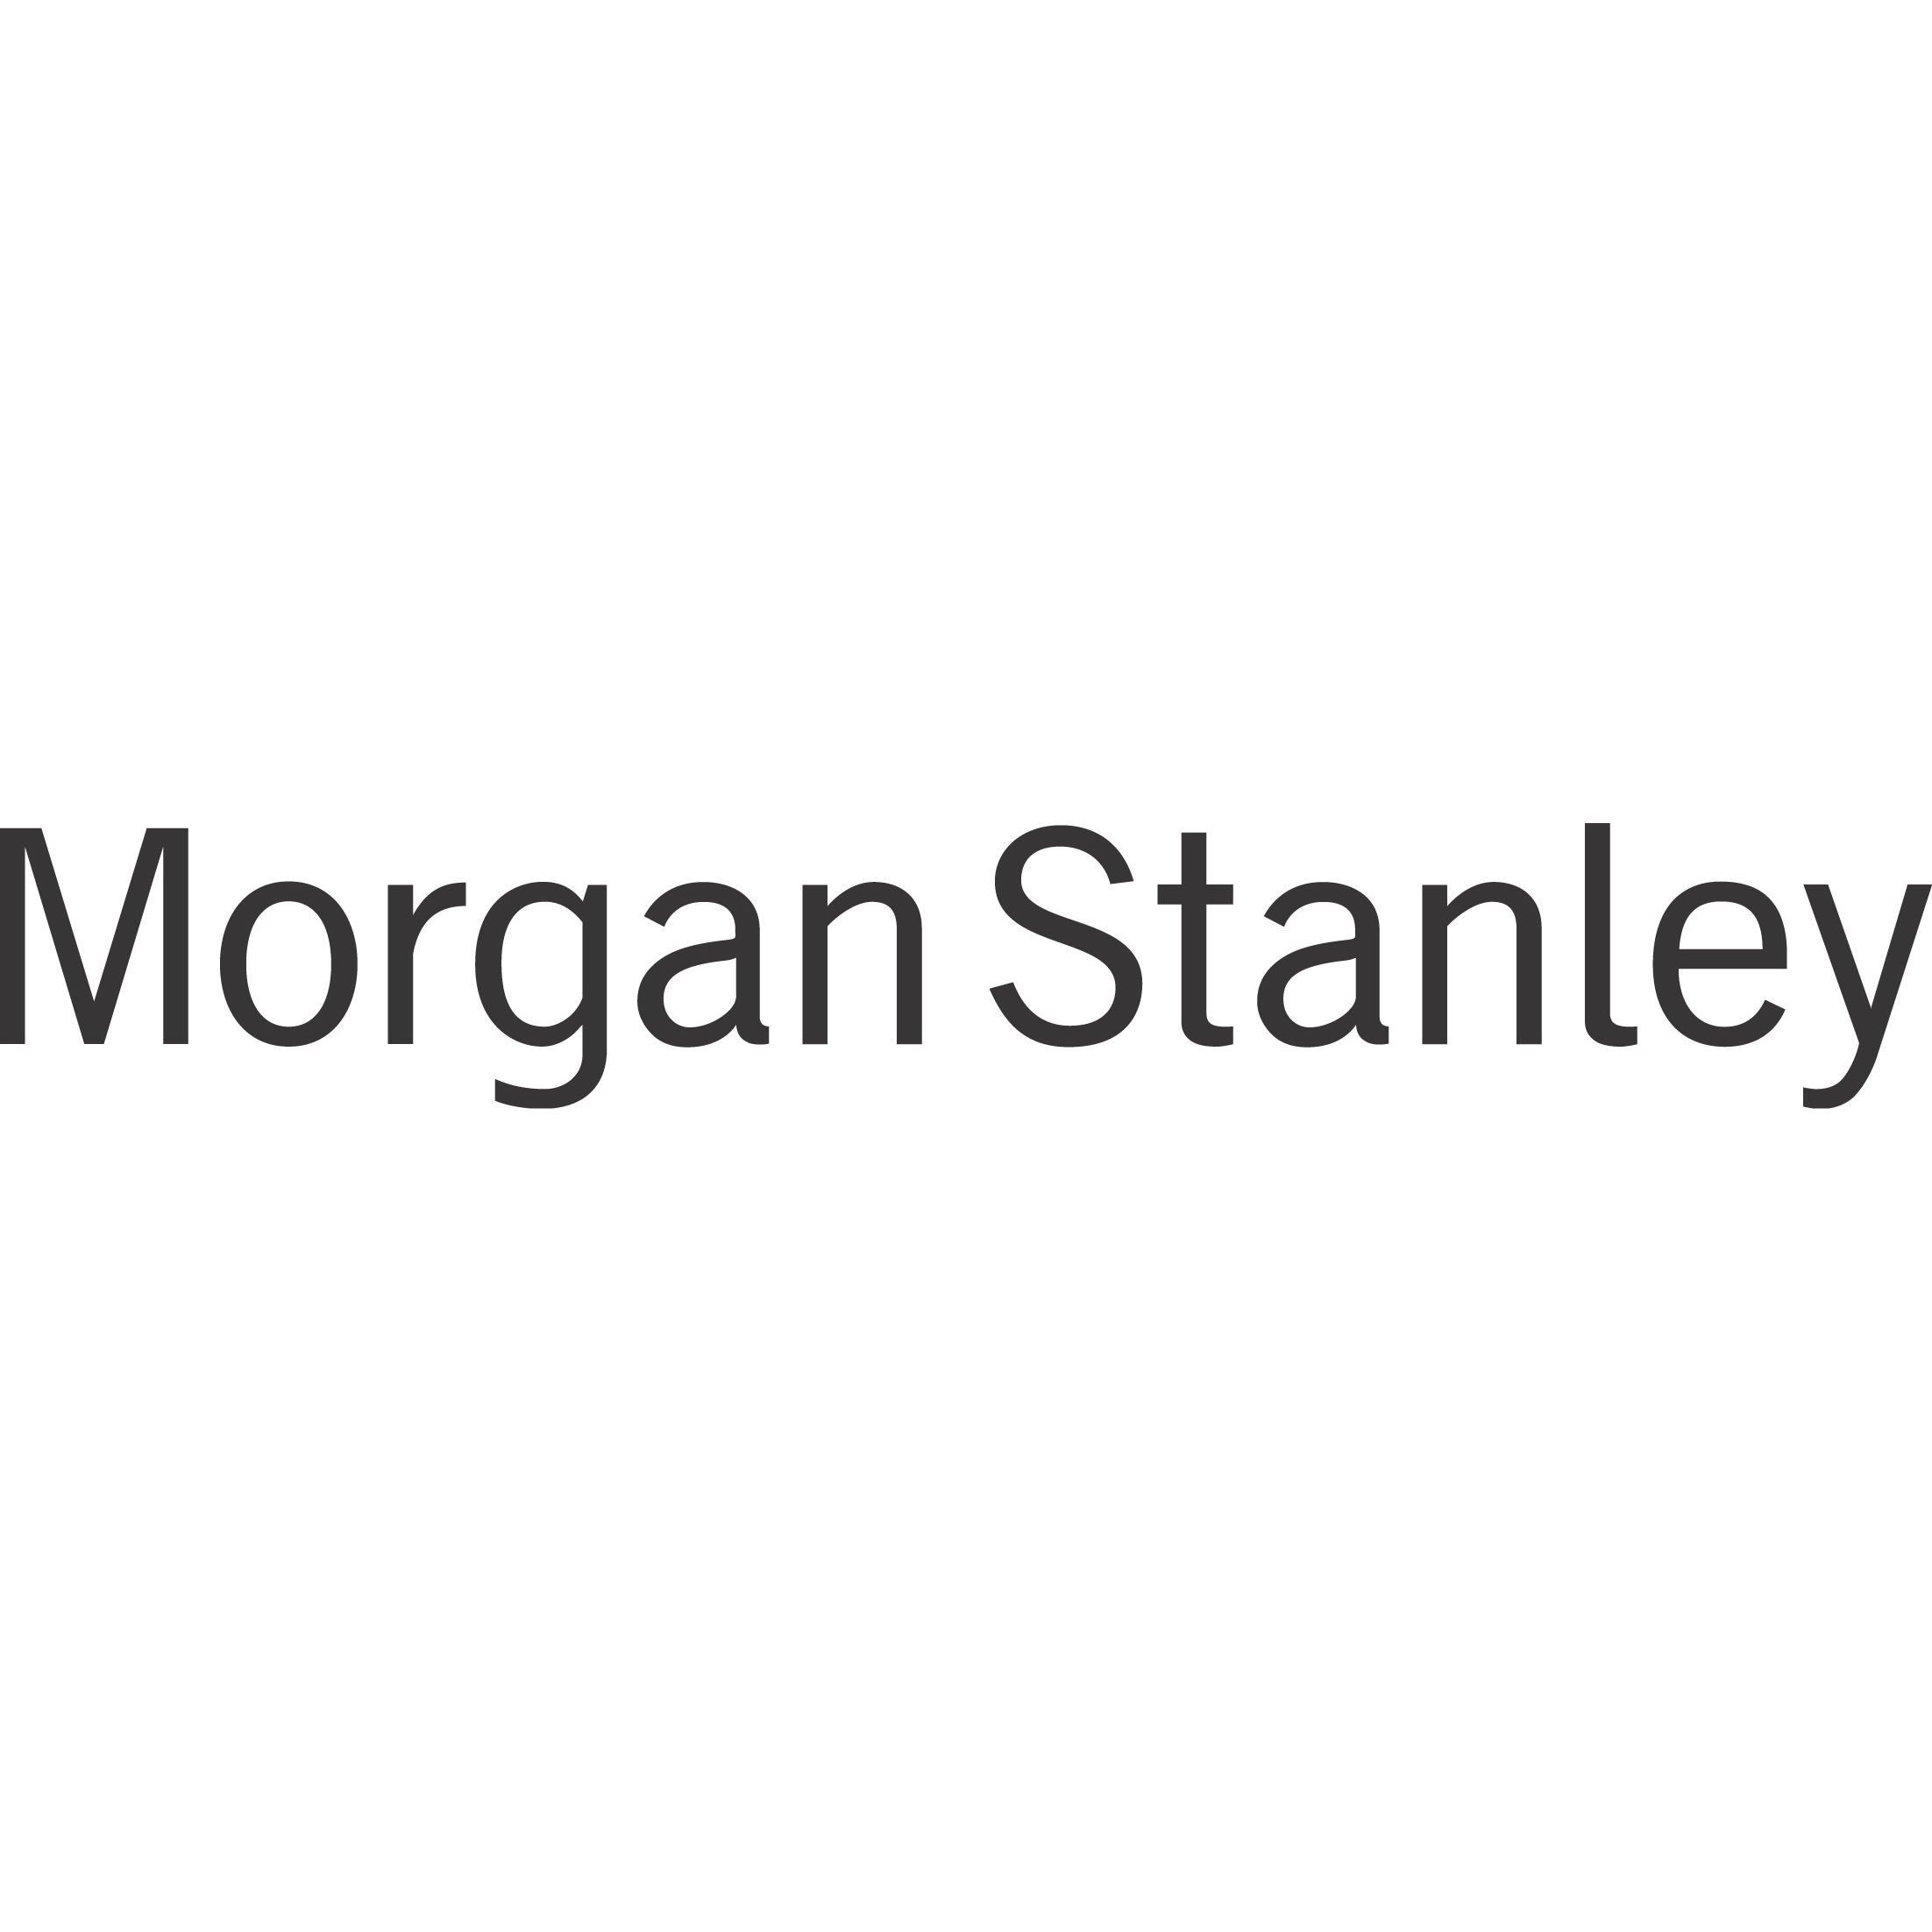 Robert Davis - Morgan Stanley